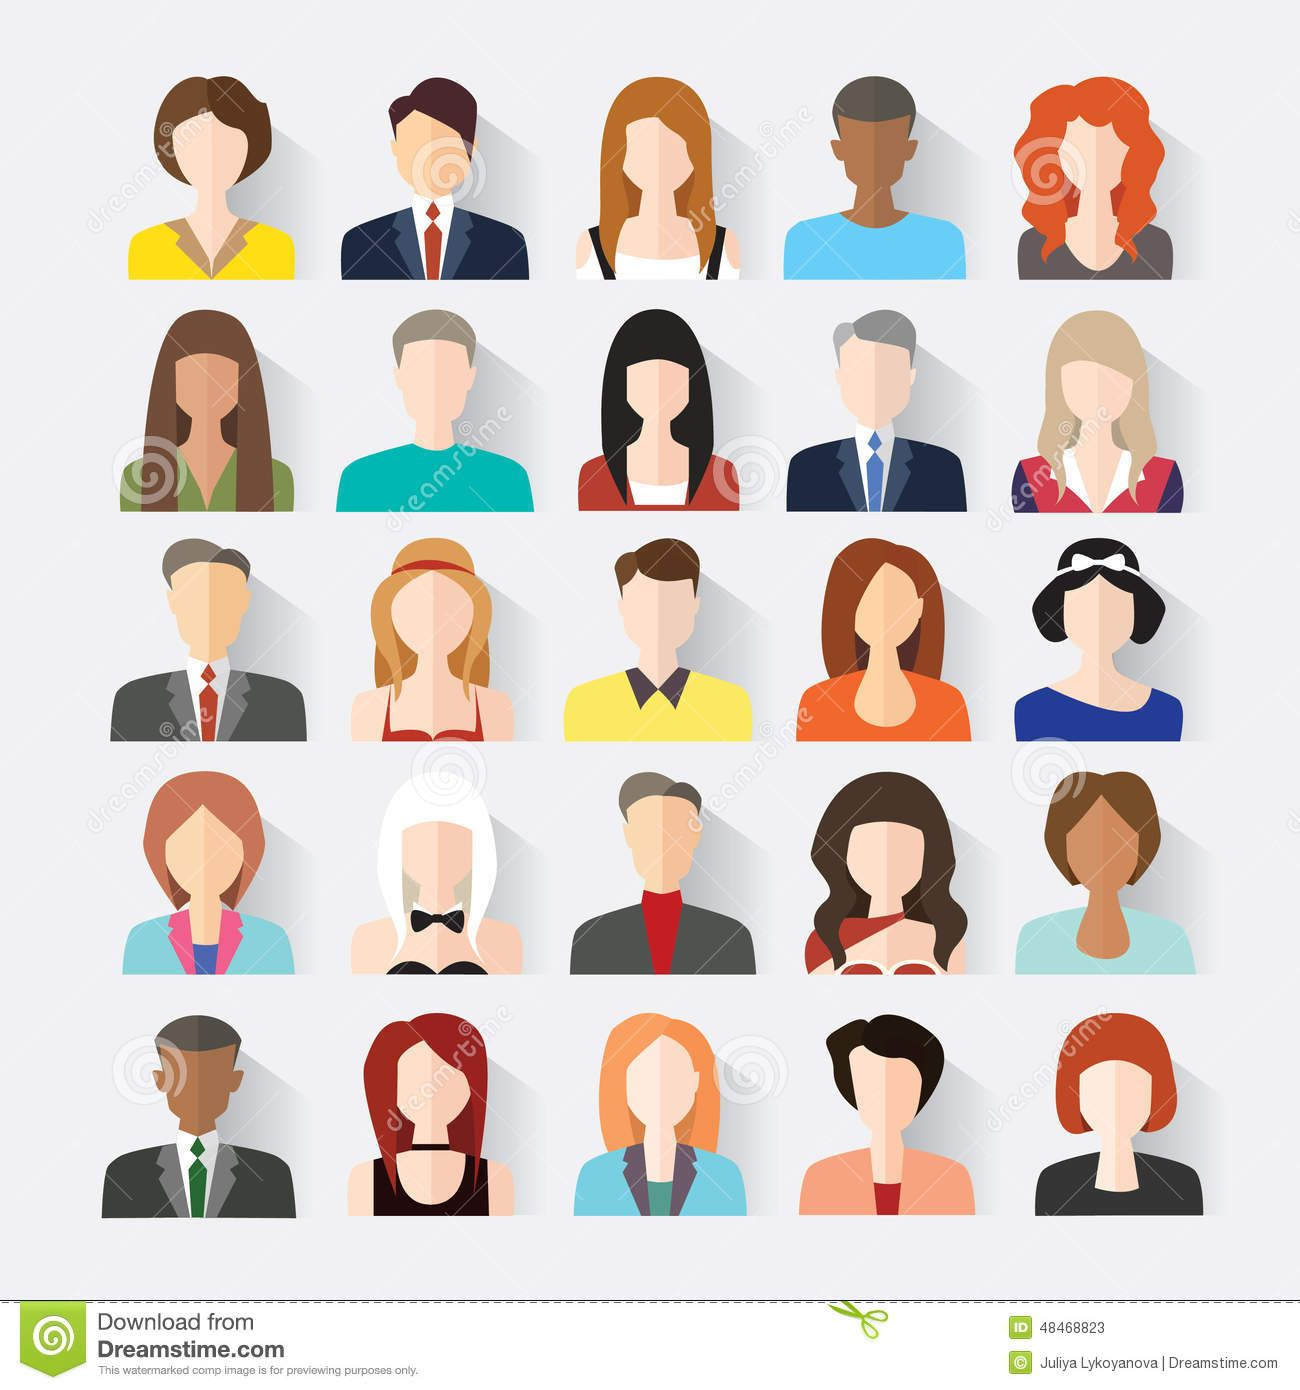 download big set of avatars profile pictures flat icons stock vector